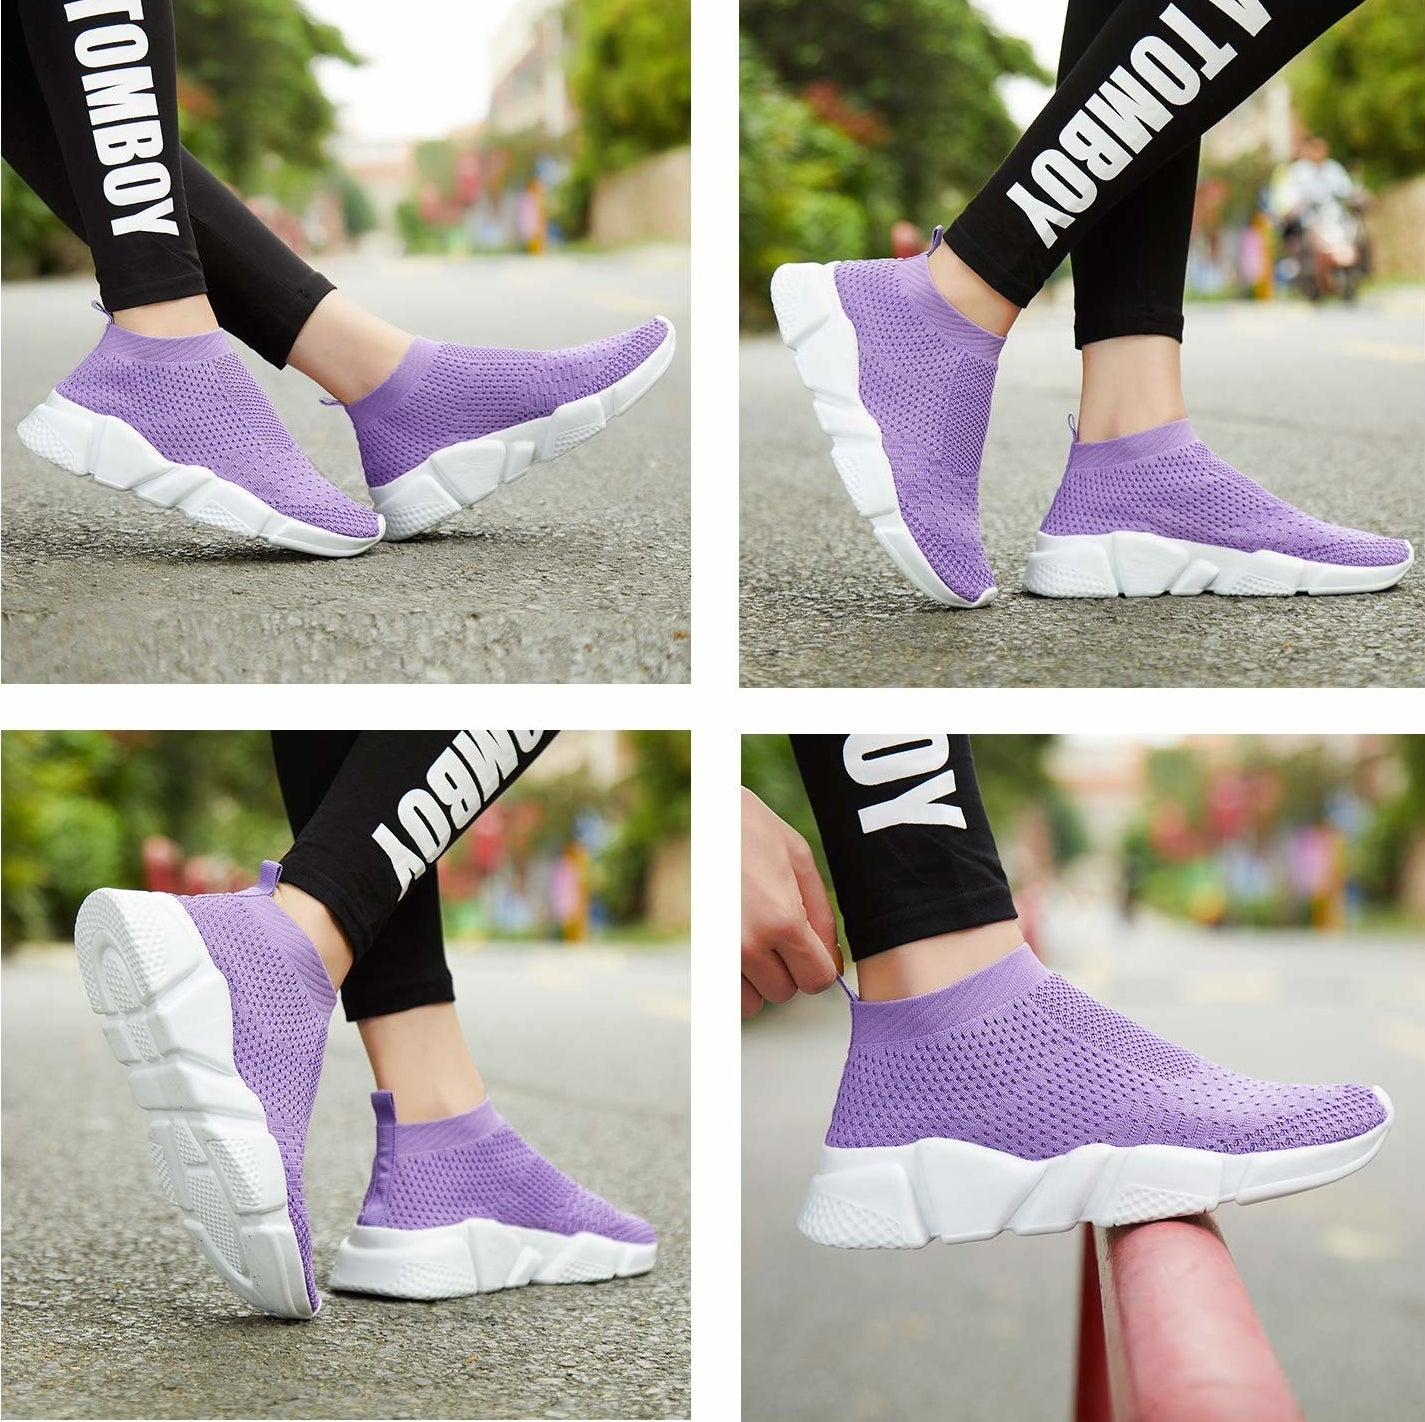 model wears sneakers in purple